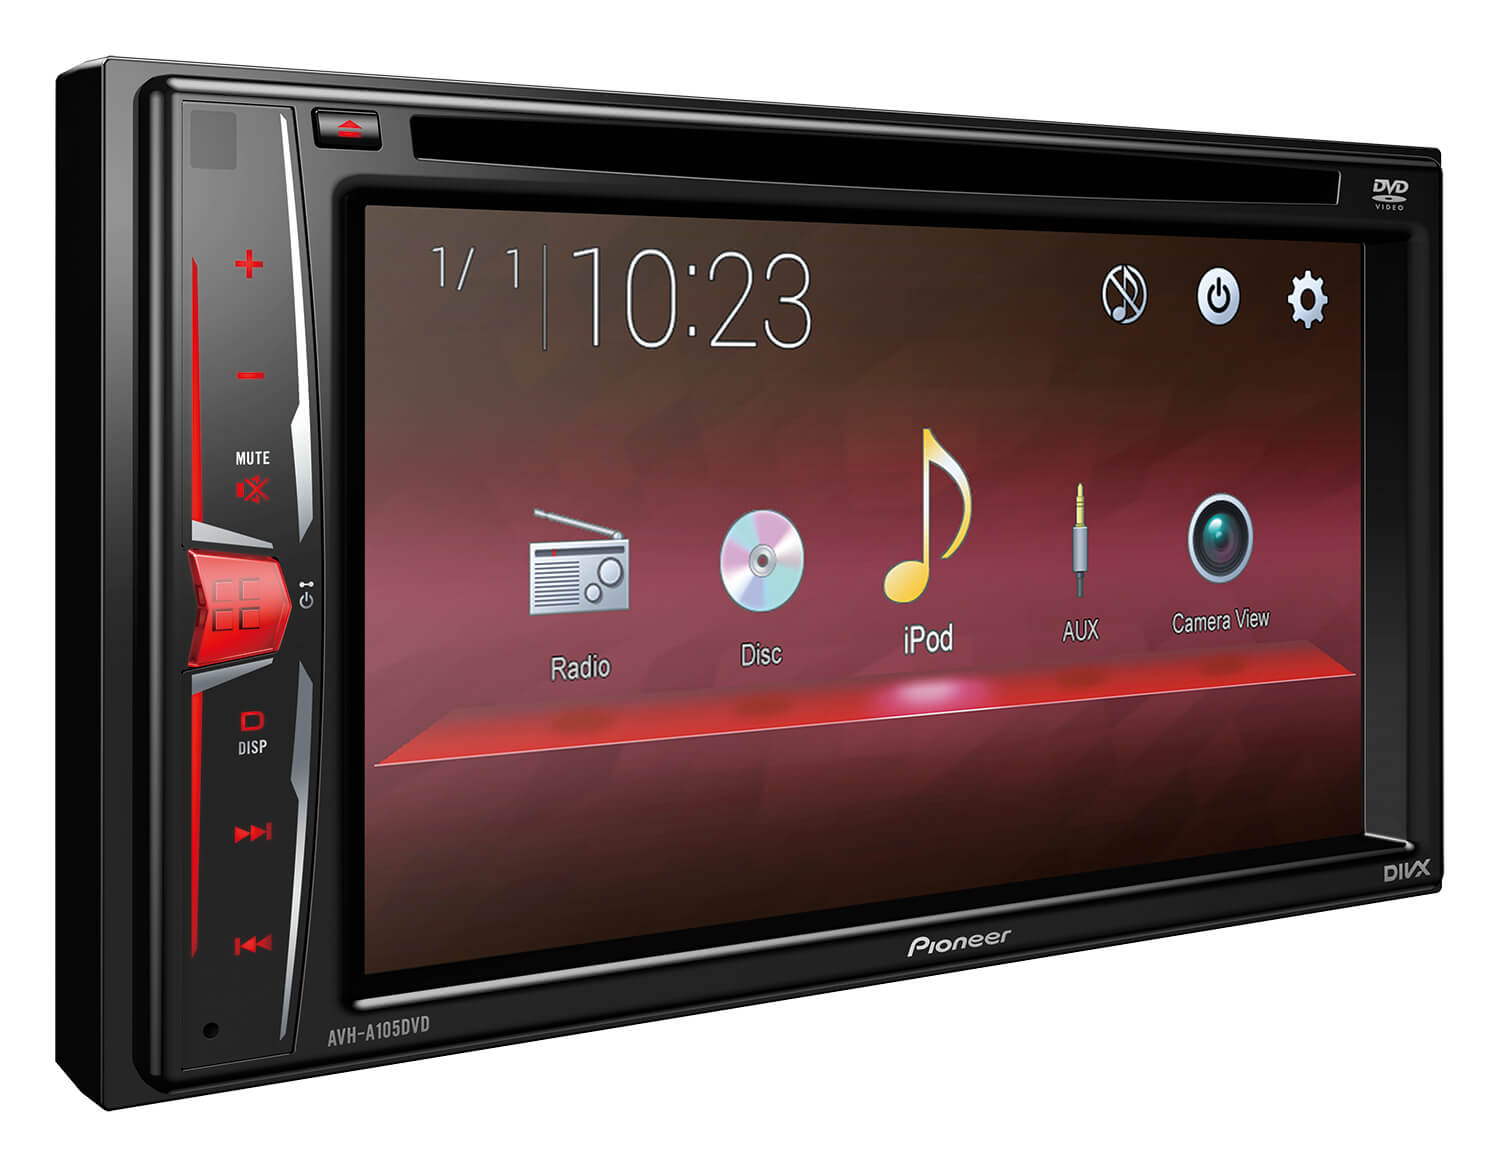 DVD Multimedia AV Receiver with 6.2 Touchscreen Display & Control for iPod/iPhone